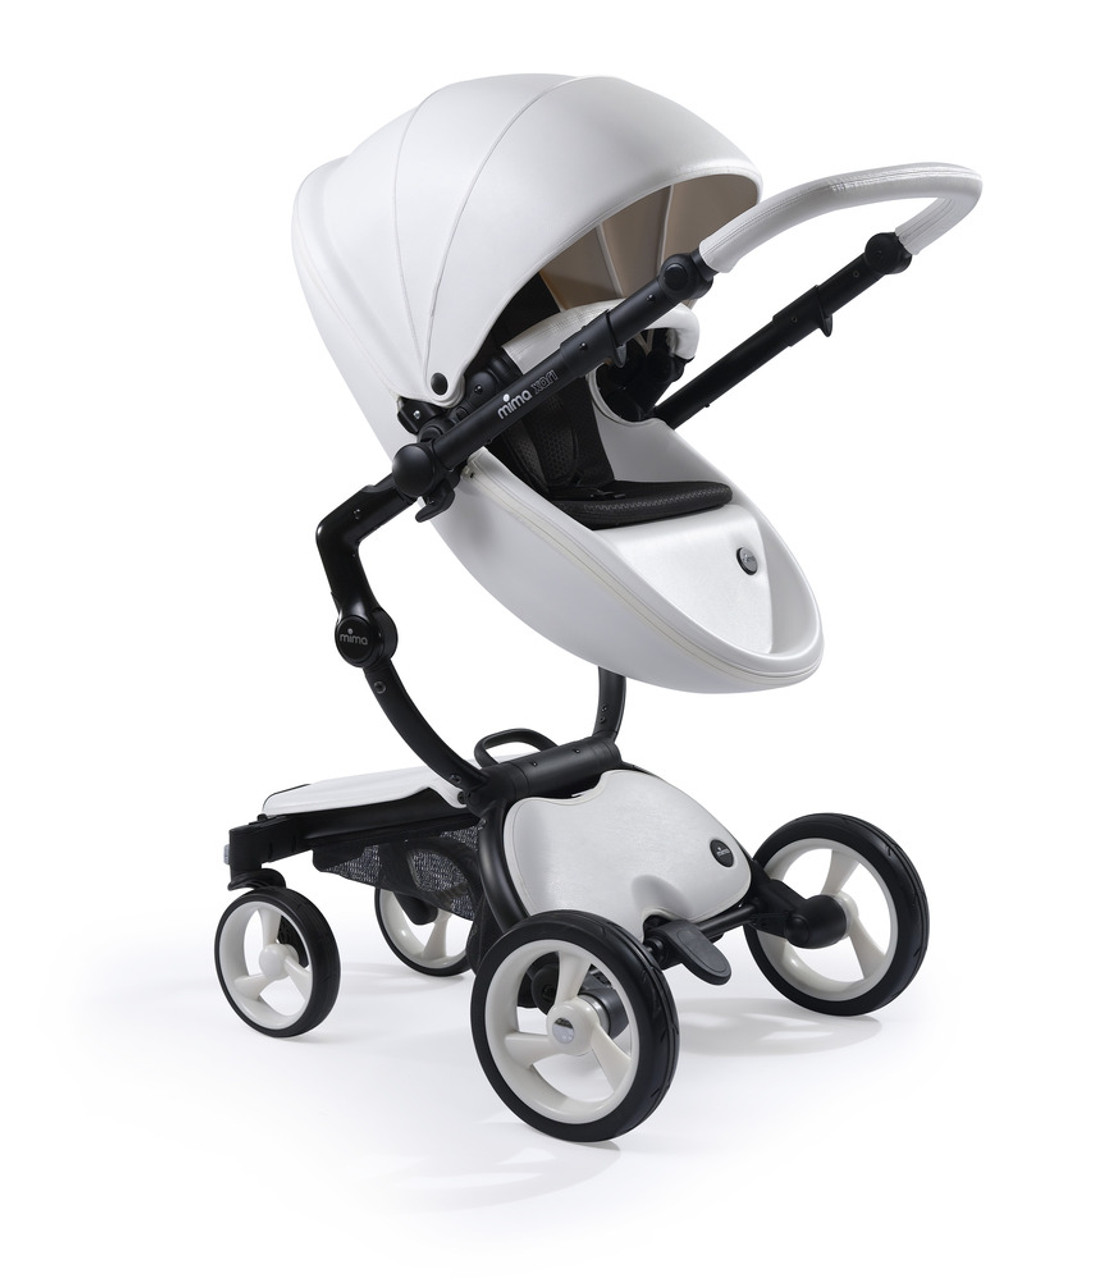 Mima Xari Seat Box 2 Snow-white Mima Xari Stroller Style And Sophistication